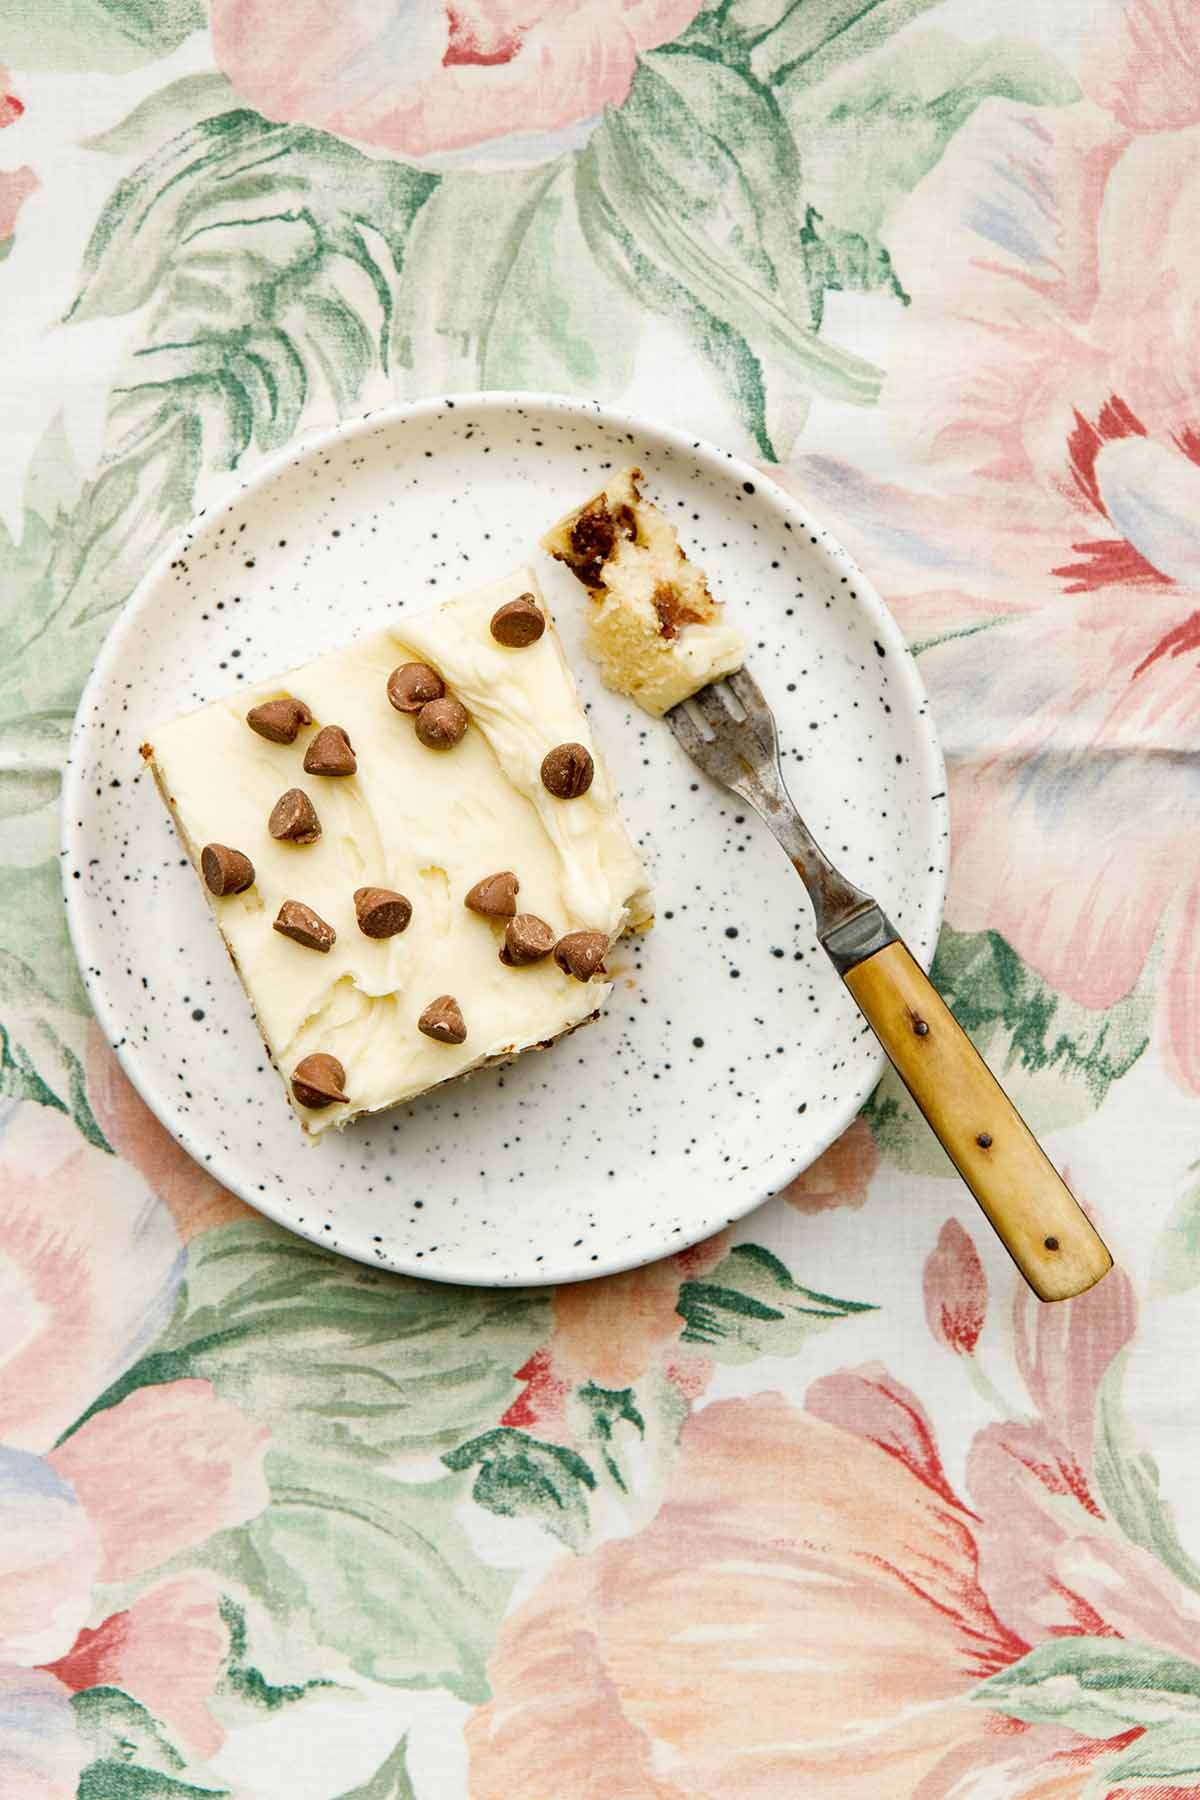 A slice of chocolate chip cake on a plate on a flowered tablecloth.